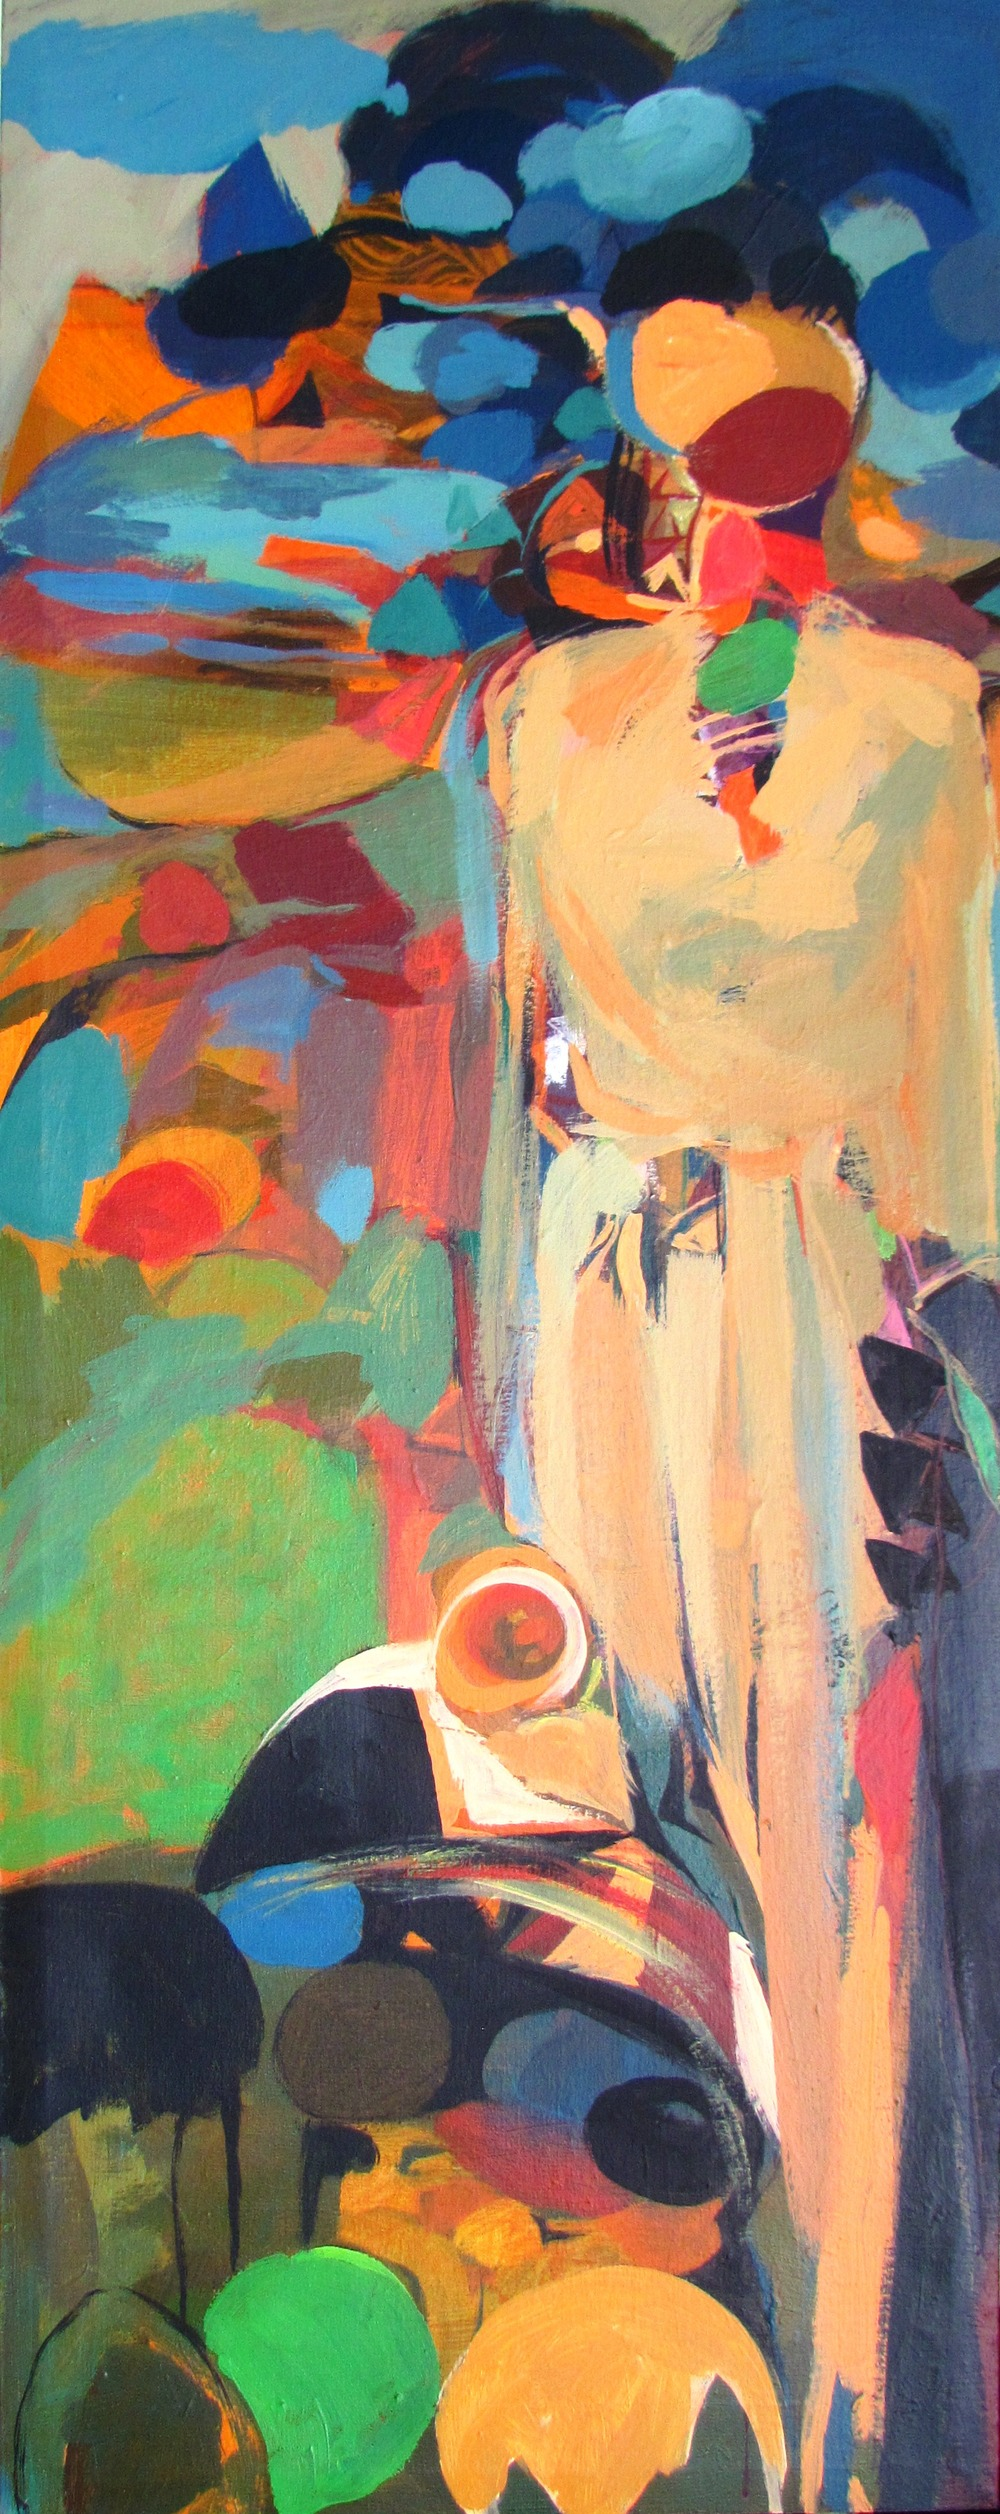 Dereje Demissie, Acrylic on canvas, 150X60cm, ''BEYOND the RUEFUL'', 2015